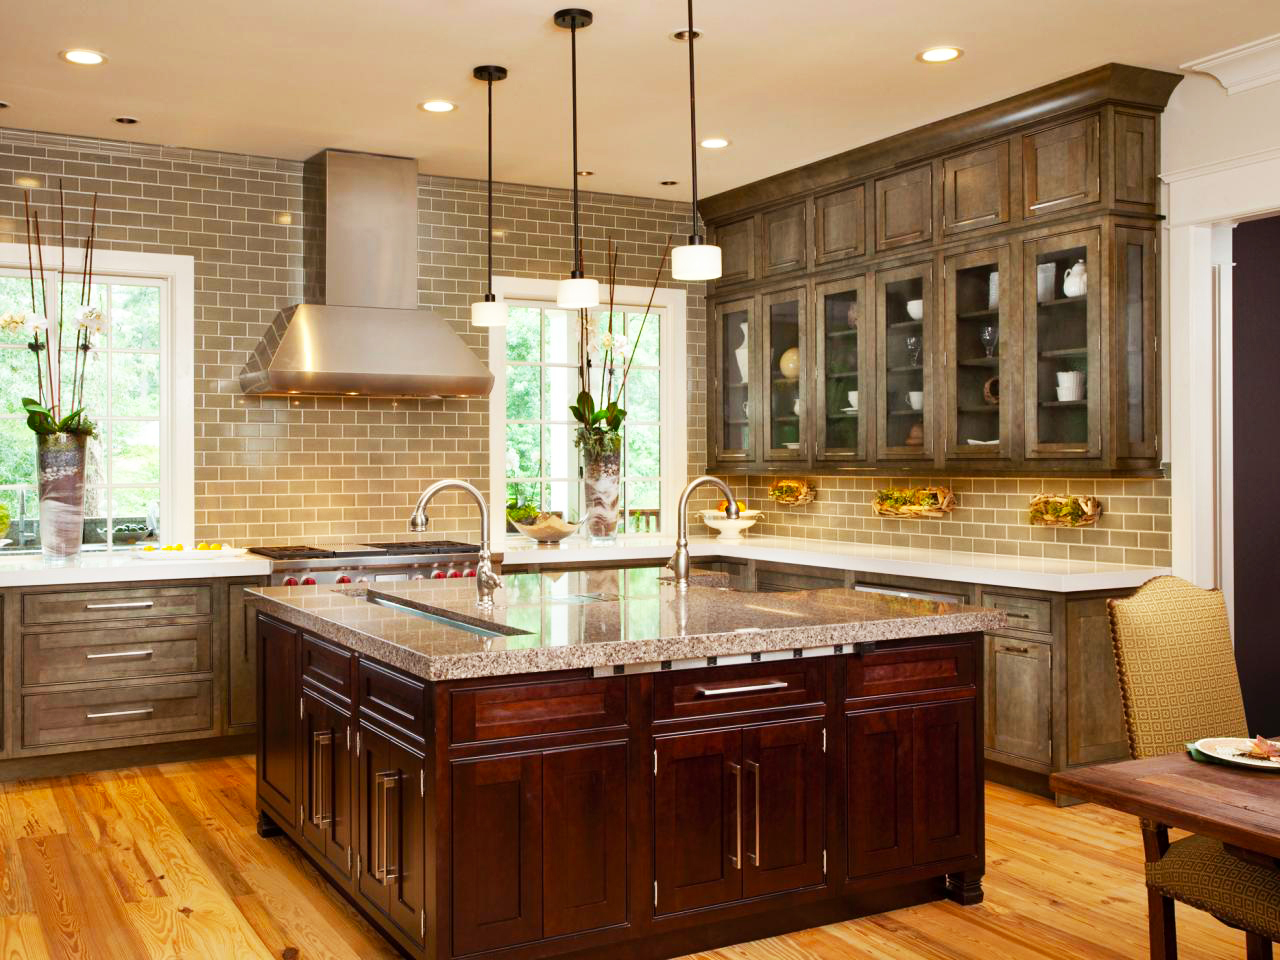 Ideas for custom kitchen cabinets roy home design for Custom kitchen design